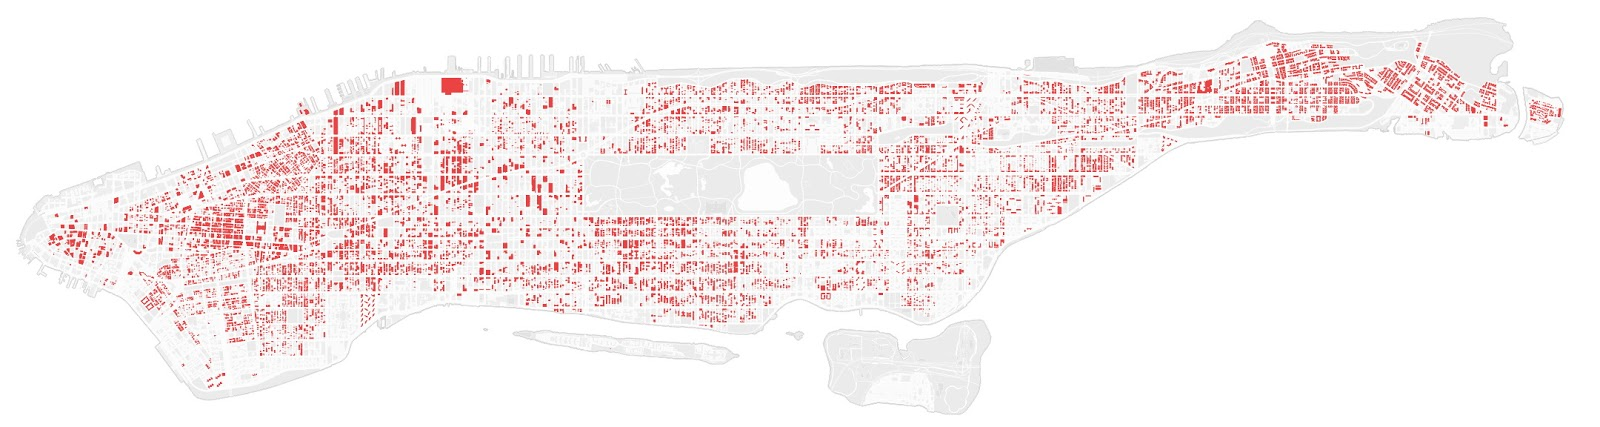 40 percent of the buildings in Manhattan could not be built today.